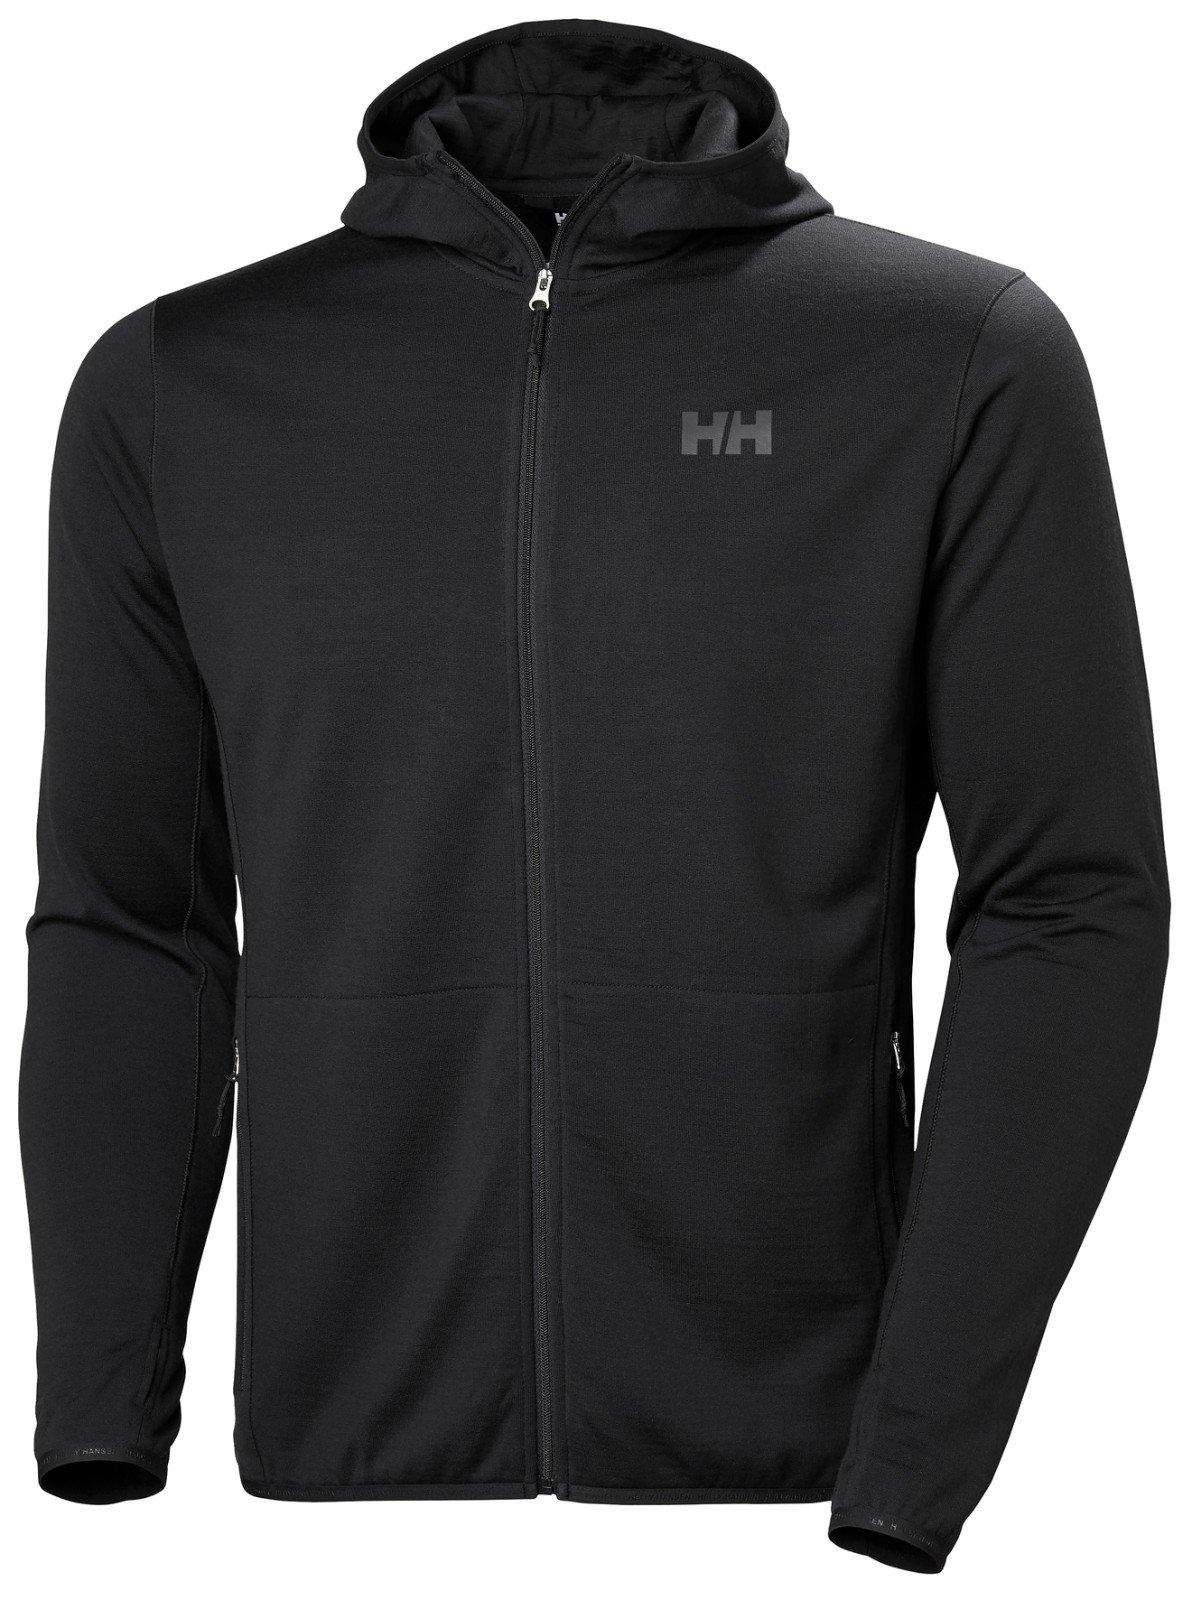 Helly Hansen Mens HH Merino Fleece Hooded Jacket - Ebony, M by Helly Hensen (Image #1)